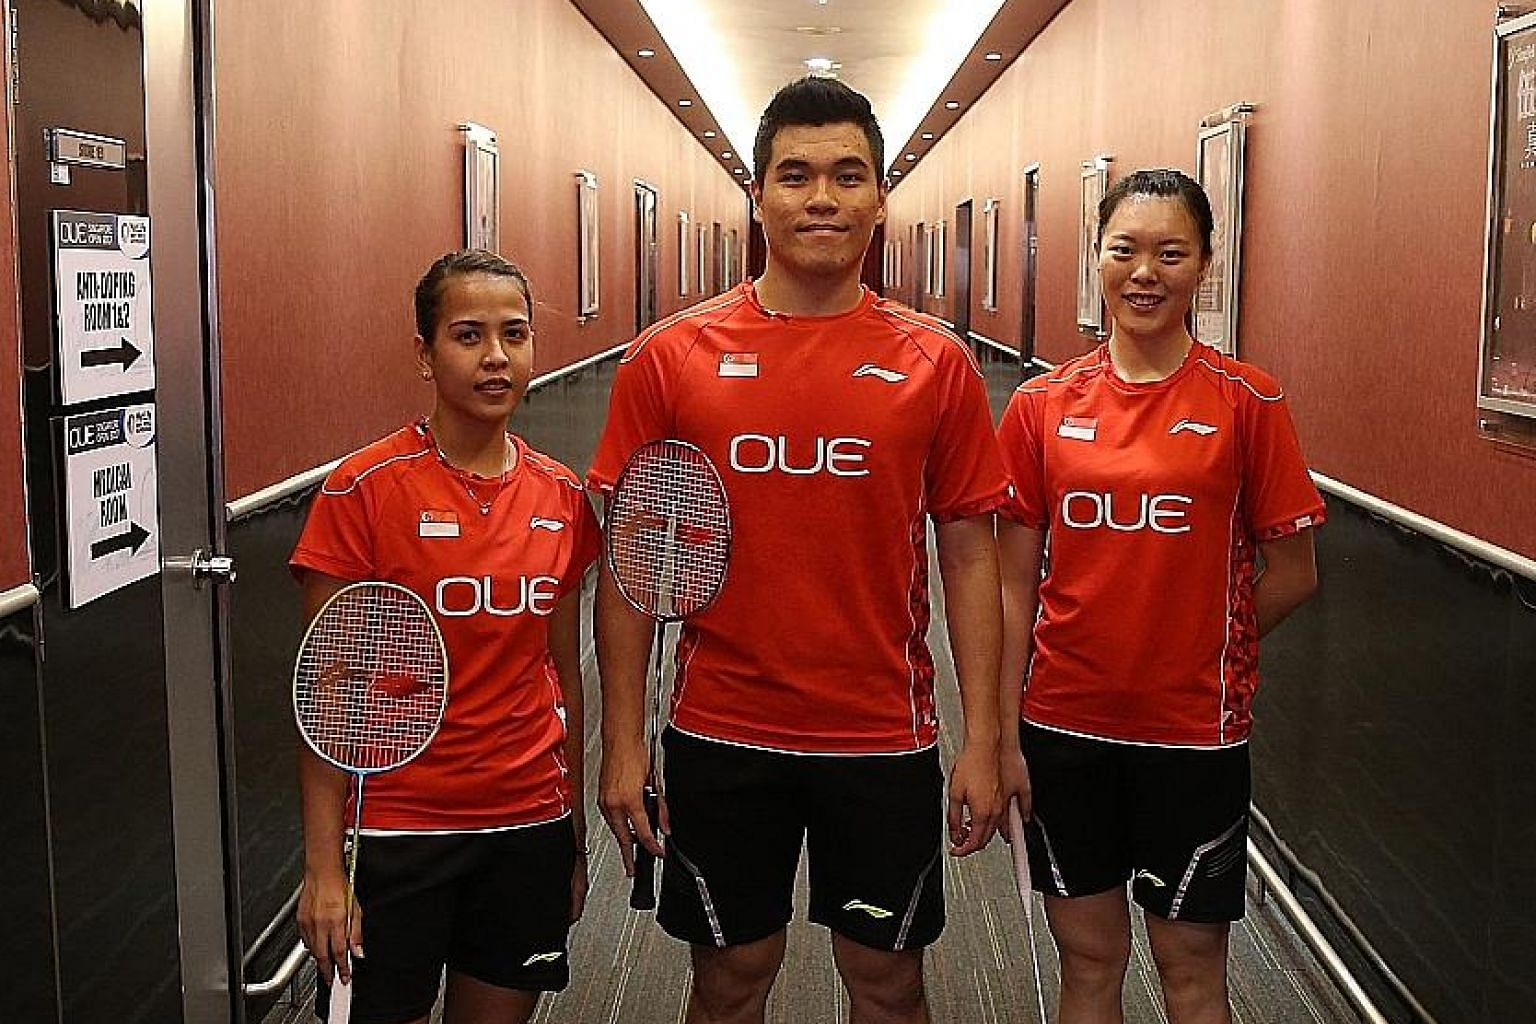 (From left) Doubles badminton players Citra Putri Sari Dewi, Bimo Adi Prakoso and Jin Yujia all came to Singapore not via the Foreign Sports Talent scheme but to study first, before playing full-time.